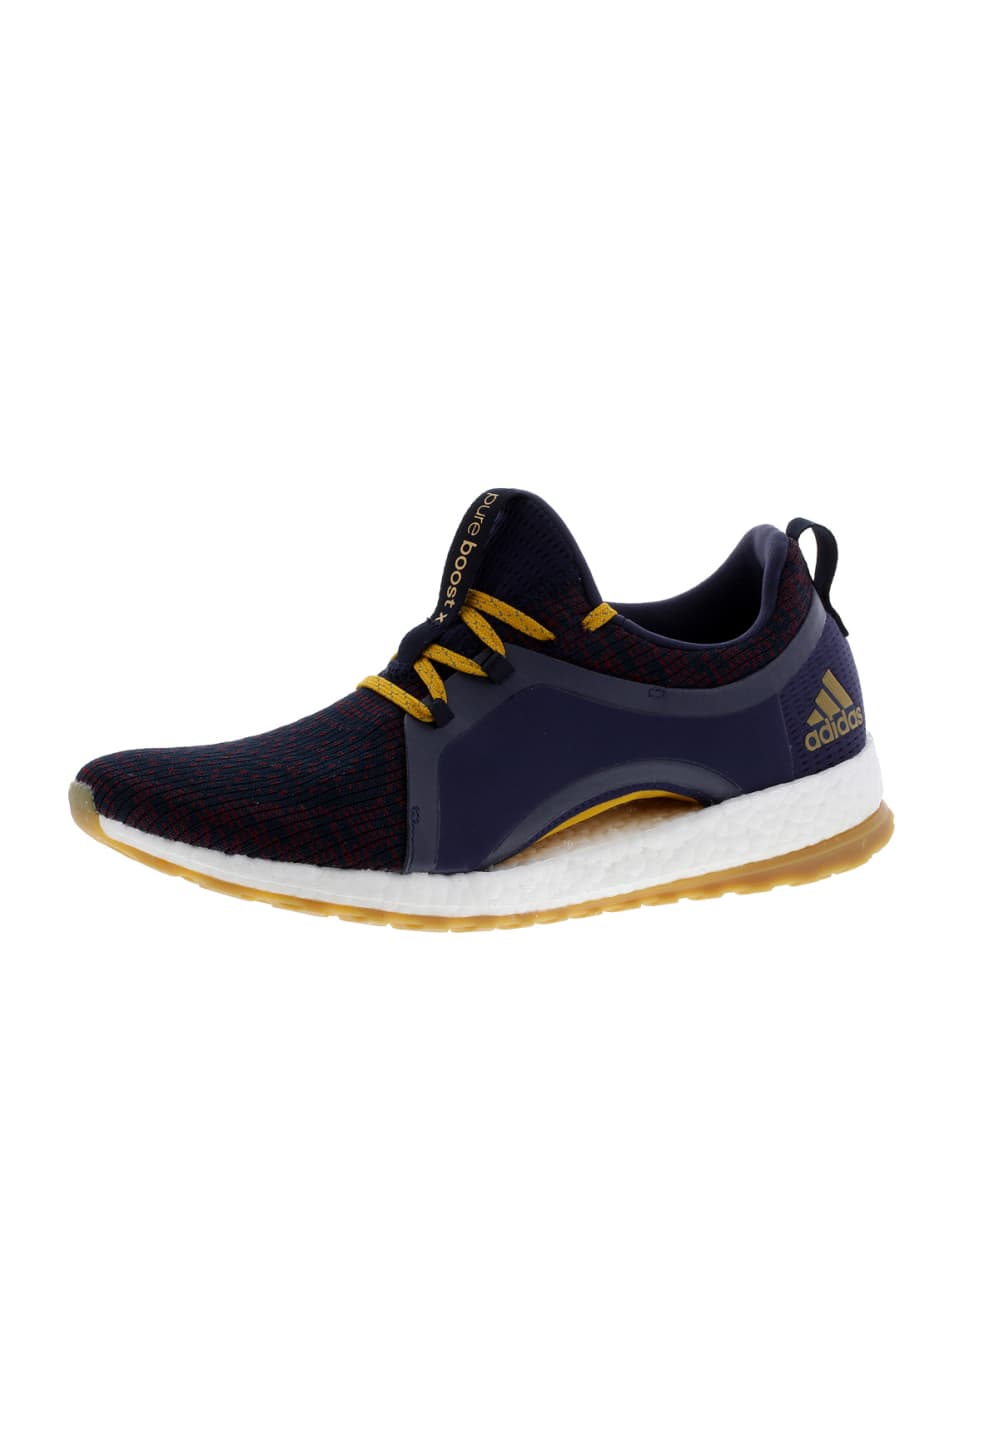 909a96188532a Next. -60%. This product is currently out of stock. adidas. PureBOOST X ATR  - Running shoes for Women